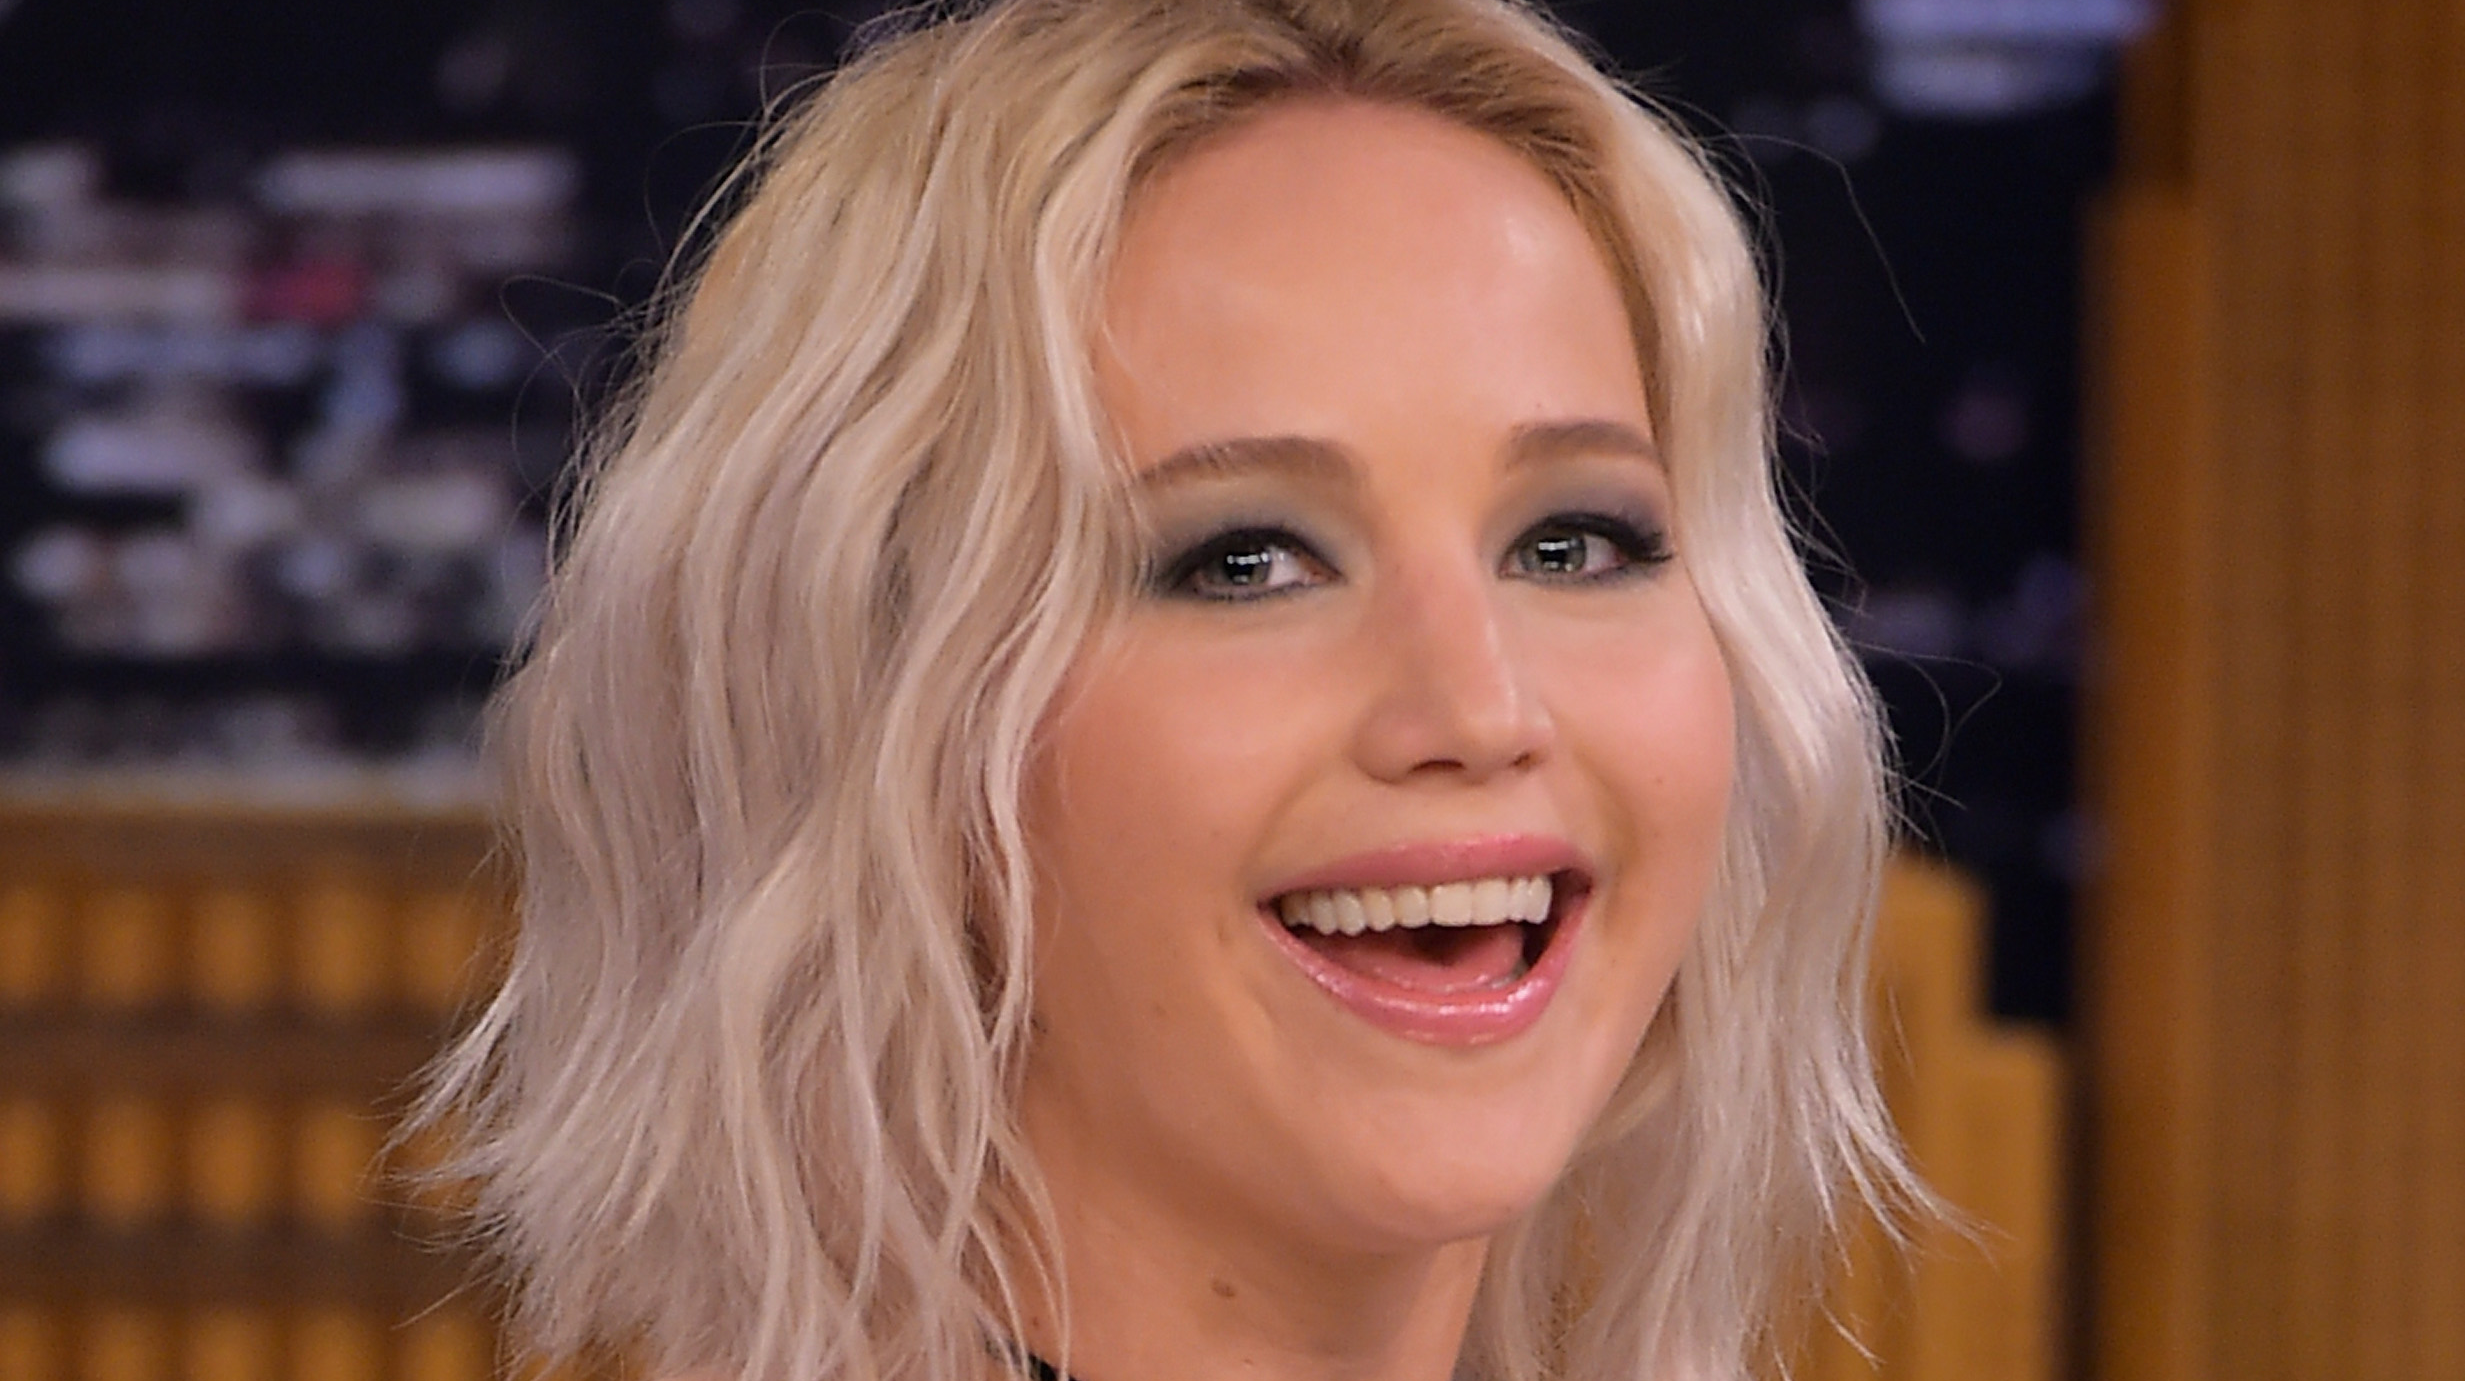 Jennifer Lawrence Rocks Some Serious Hair Extensions at 'Passengers' Premiere